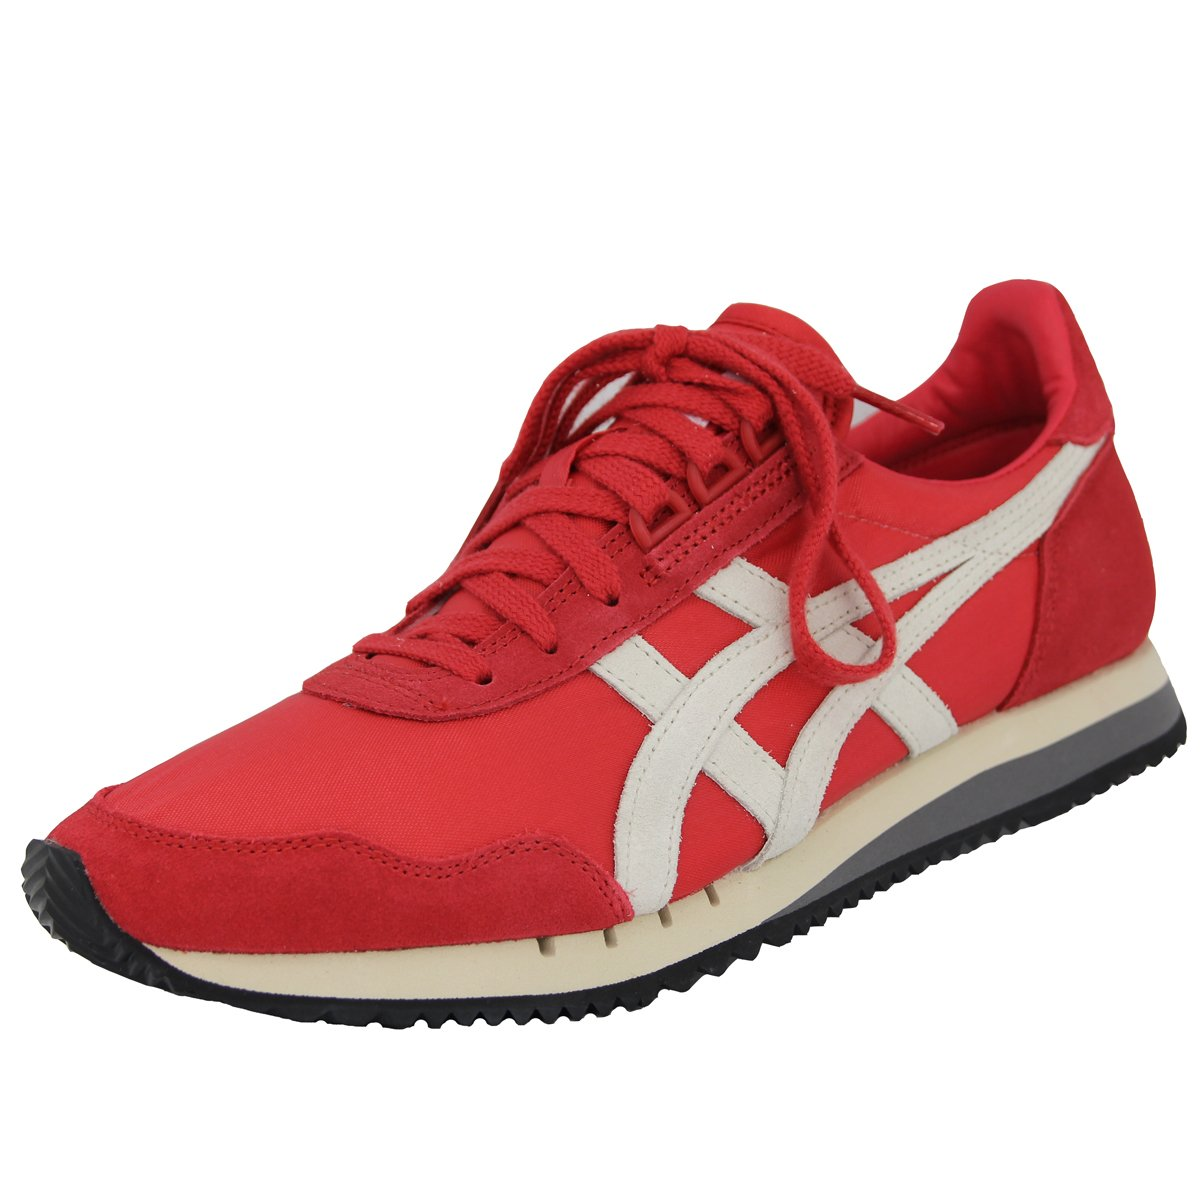 new arrivals 7c30f 70921 Onitsuka Tiger Dualio, Unisex Adults' Sneakers: Amazon.co.uk ...